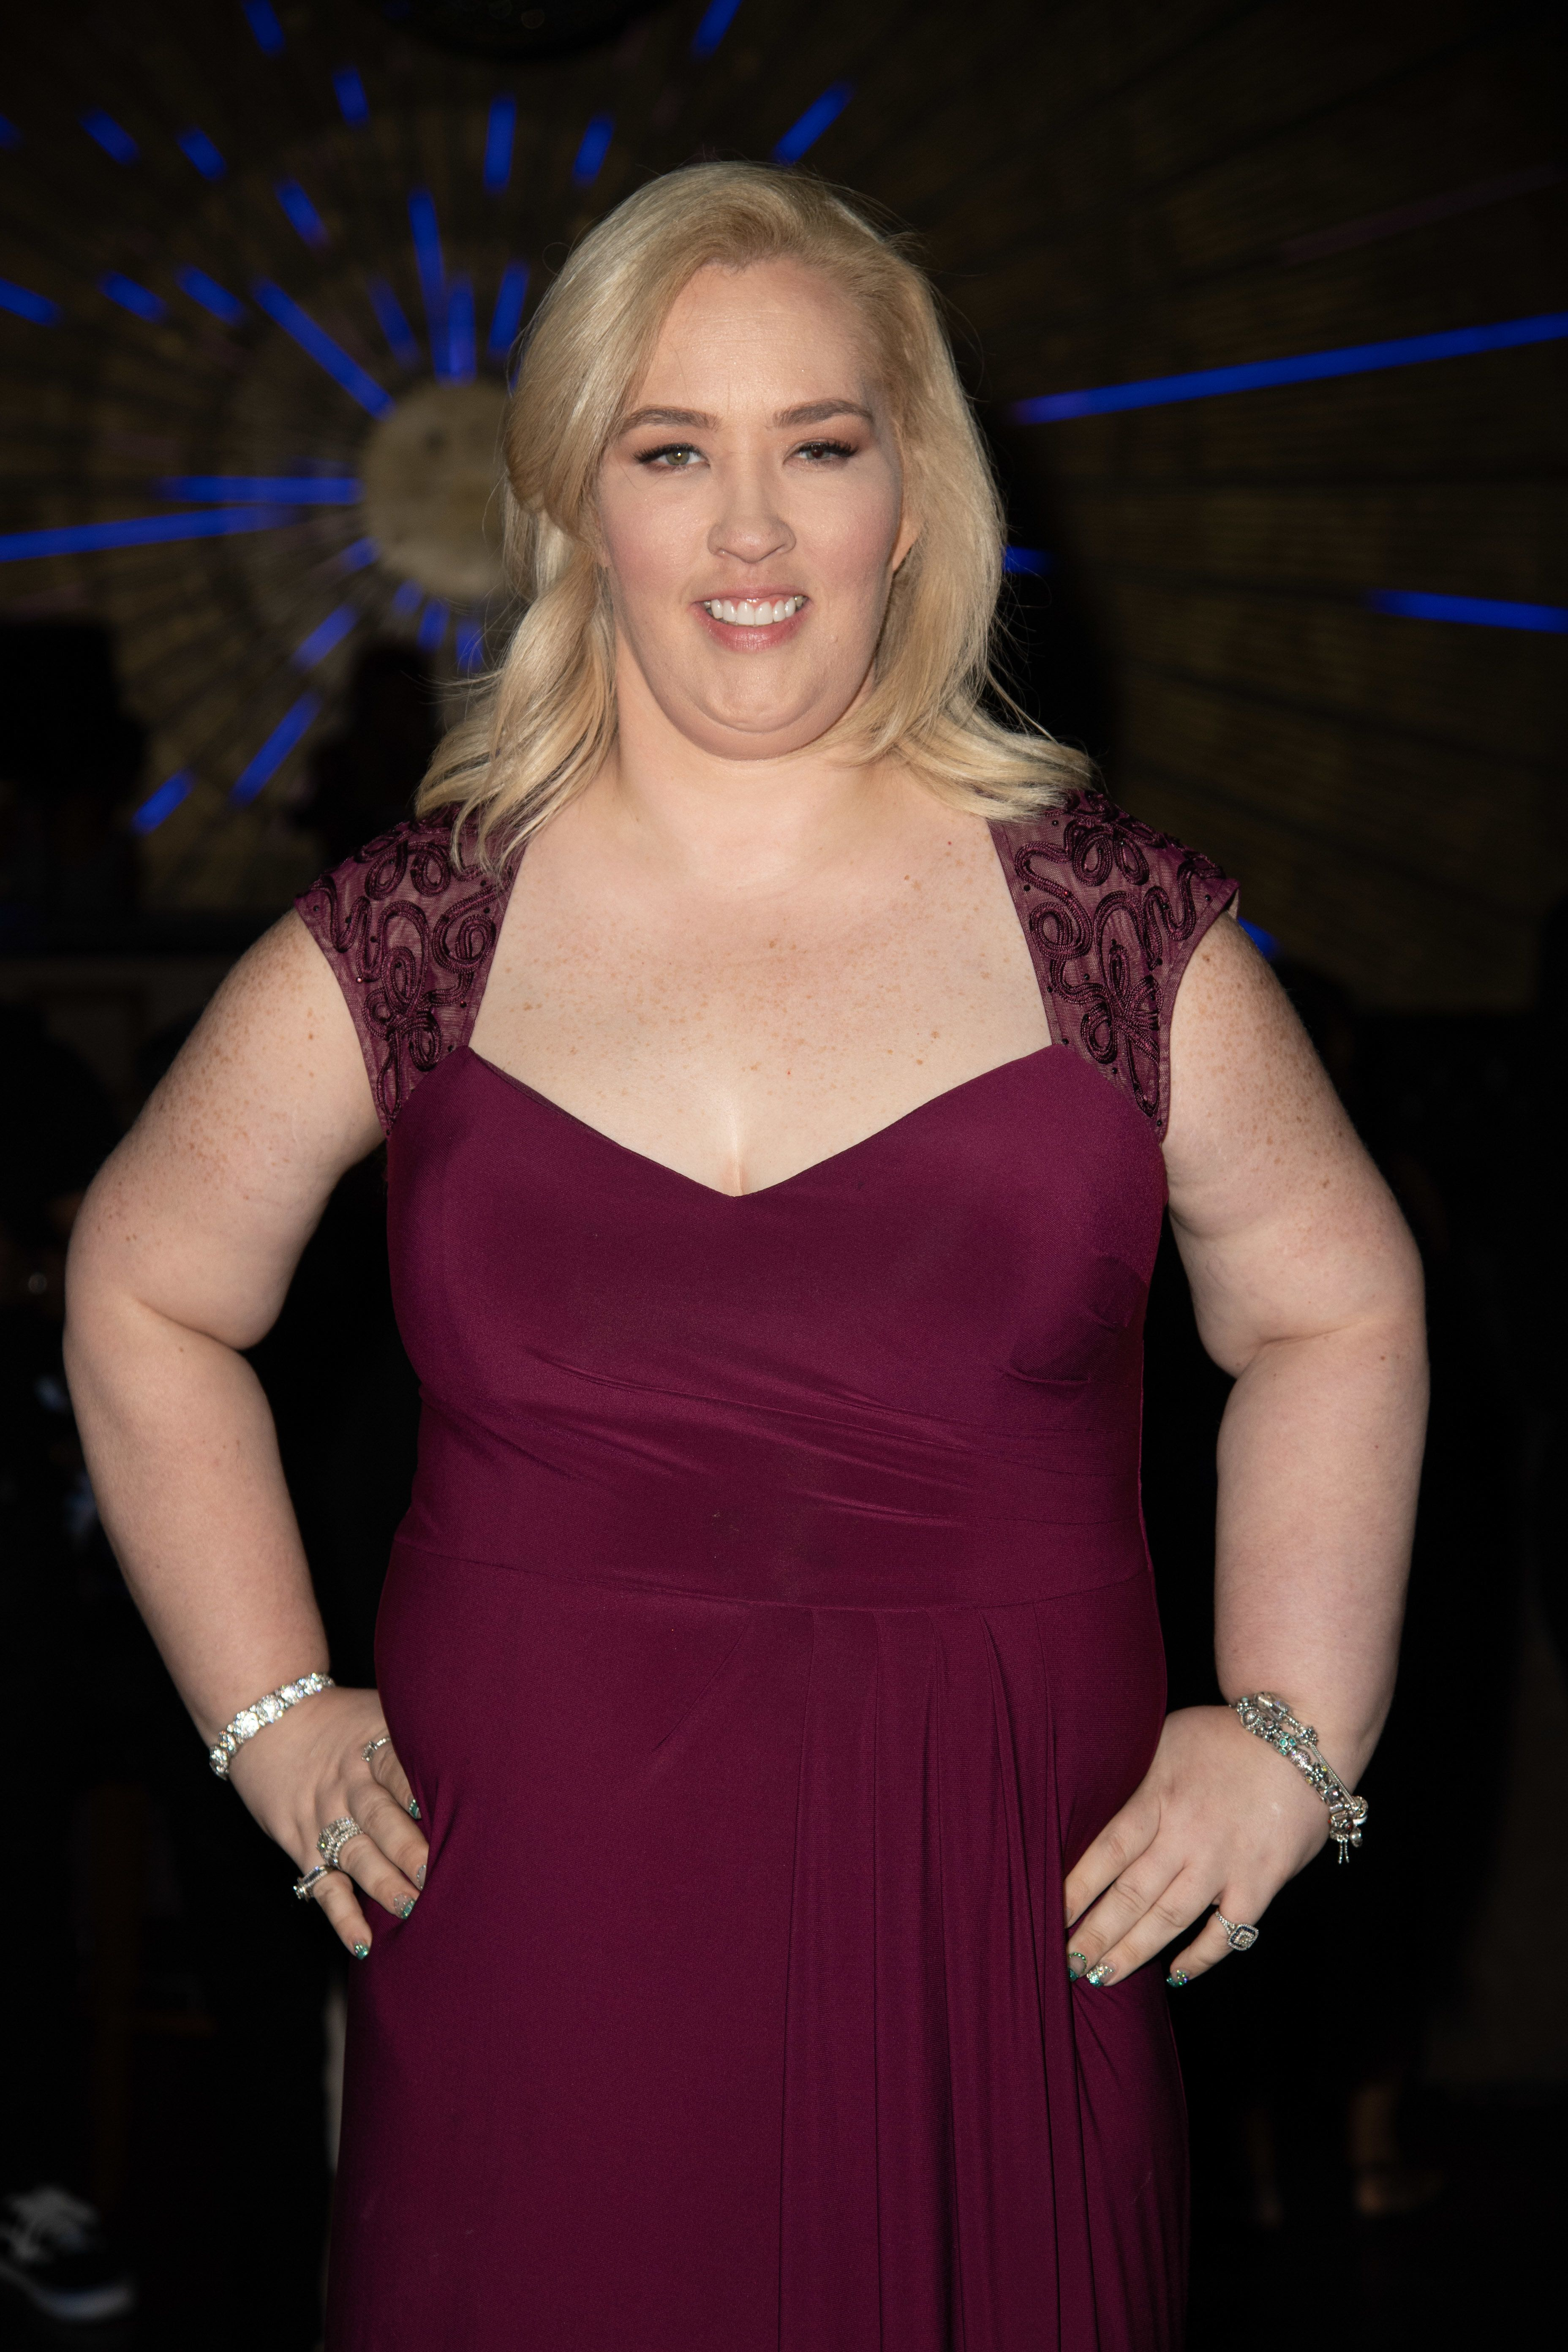 LOS ANGELES, CA - JULY 31:  Mama June attends Bossip Best Dressed List Event on July 31, 2018 in Los Angeles, California.  (Photo by Earl Gibson III/Getty Images for WE tv )